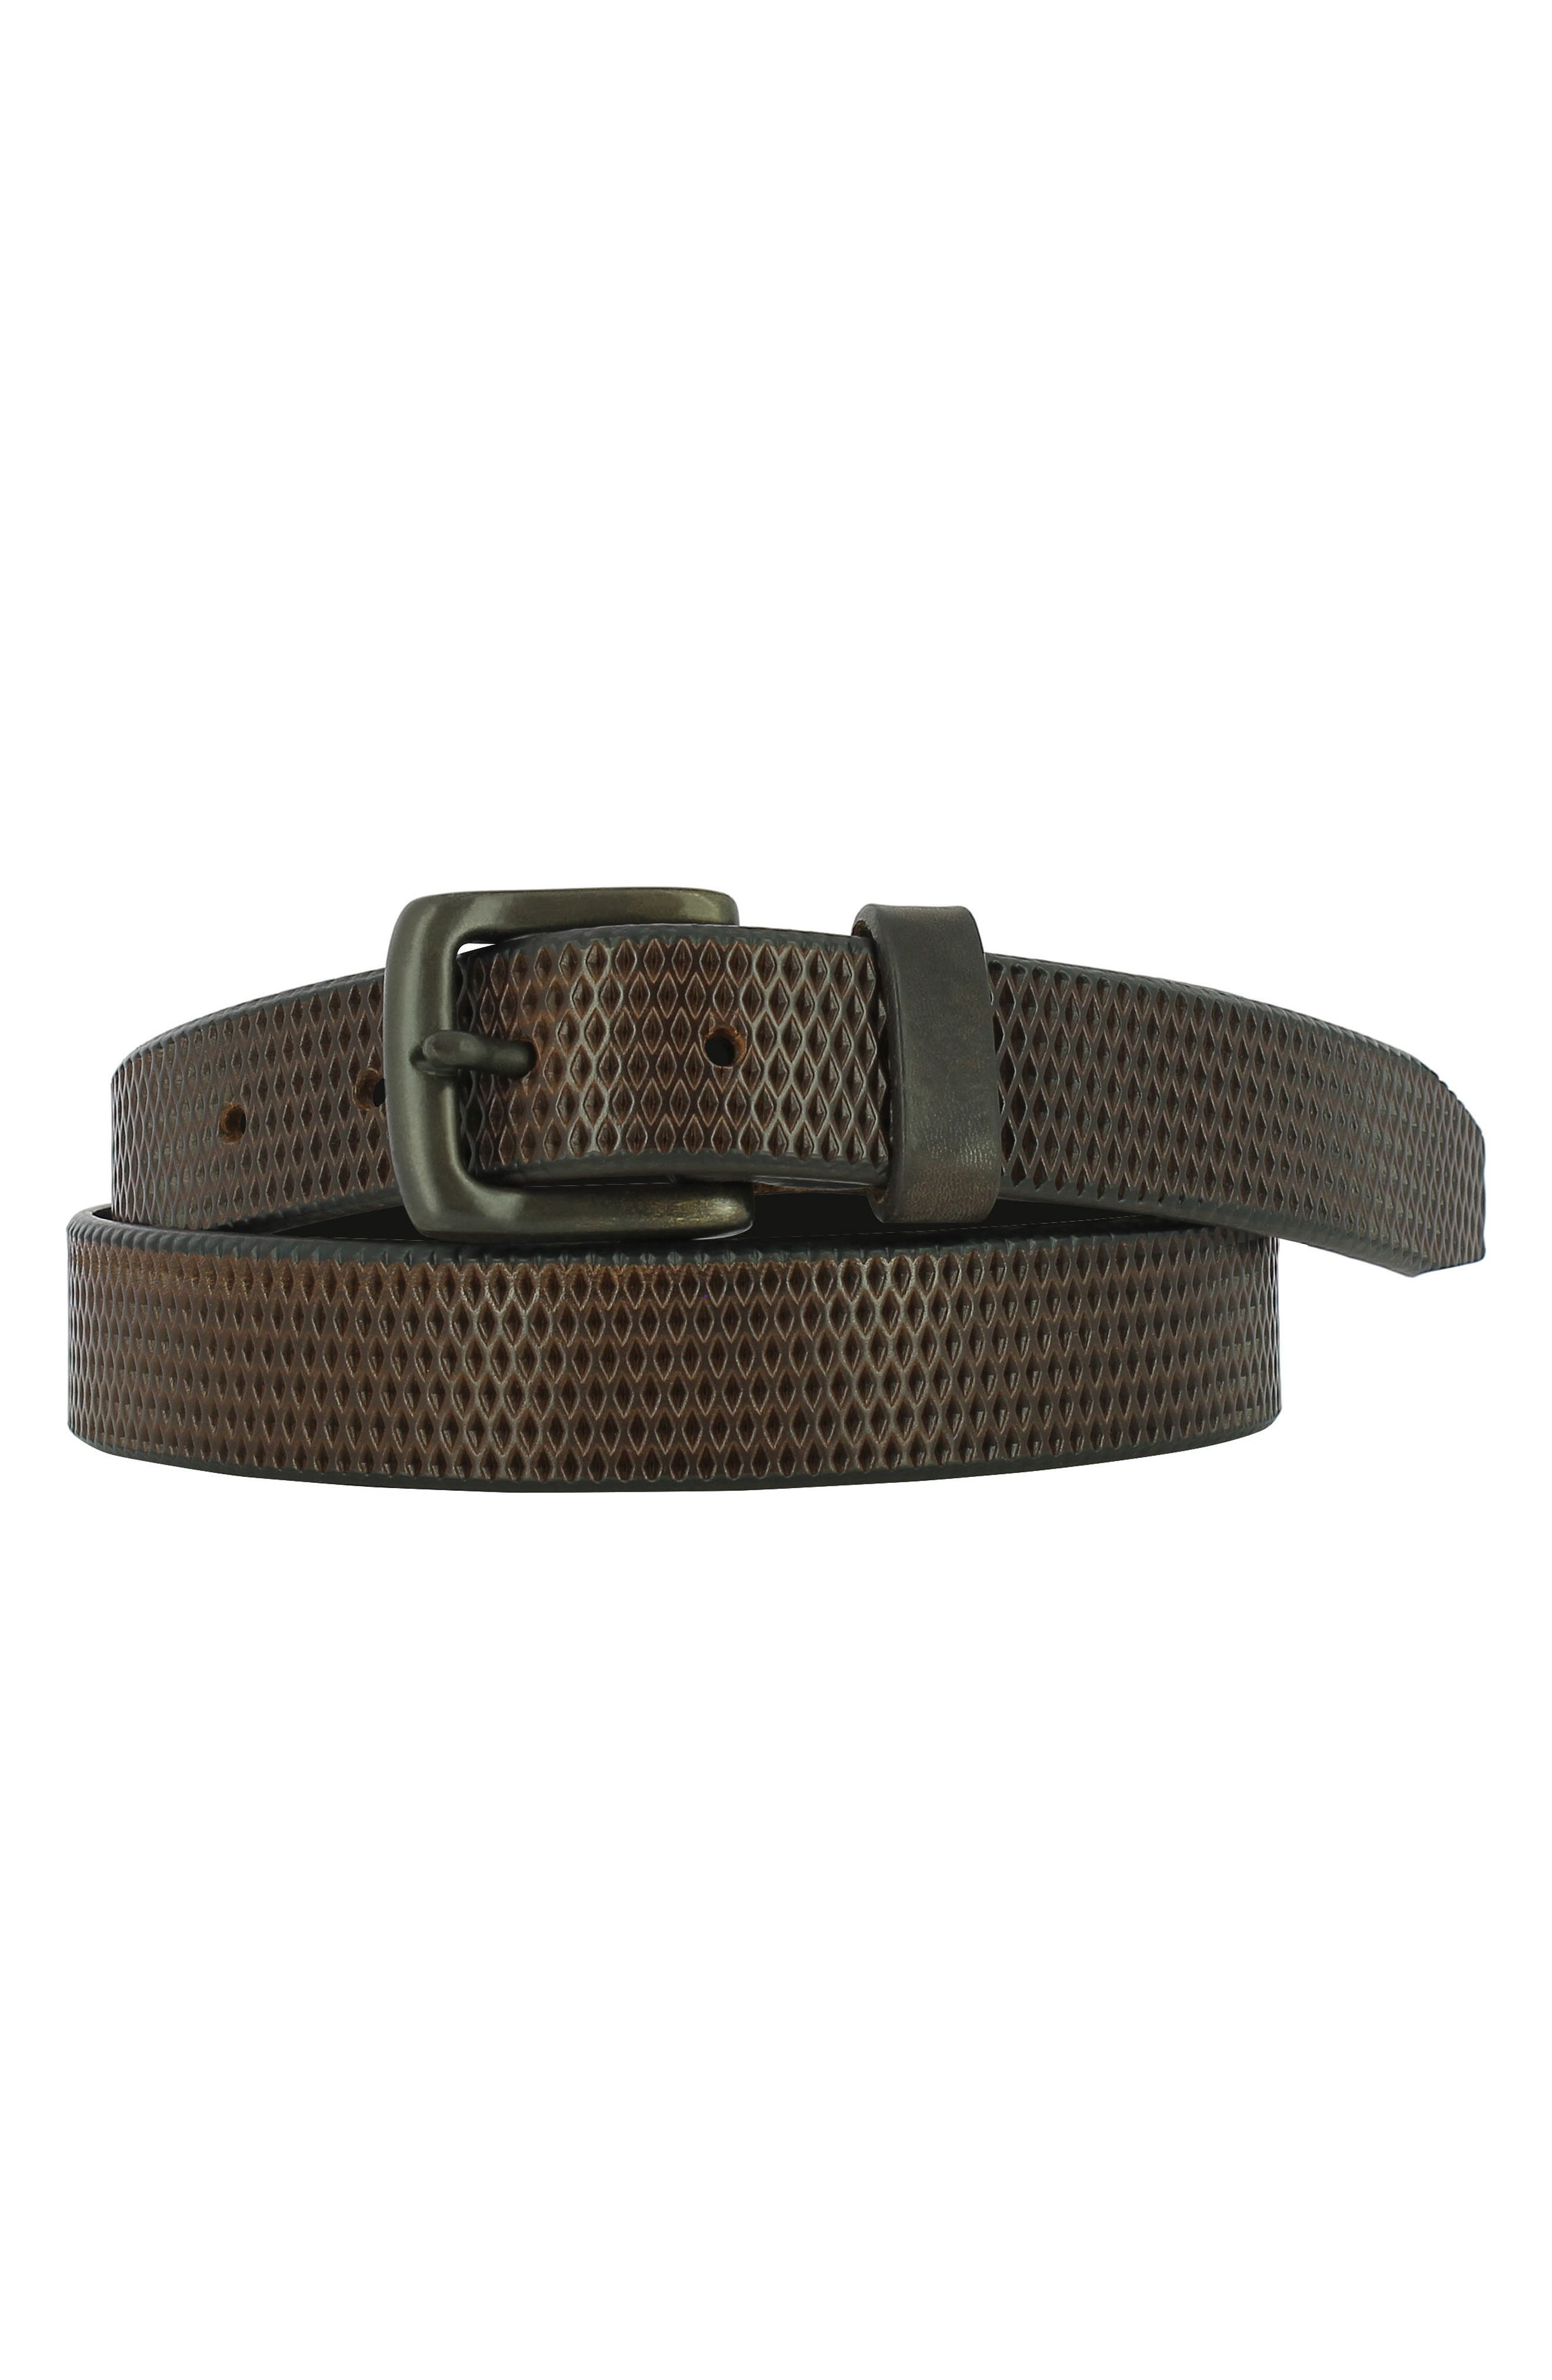 Valentino Leather Belt,                         Main,                         color, Brown